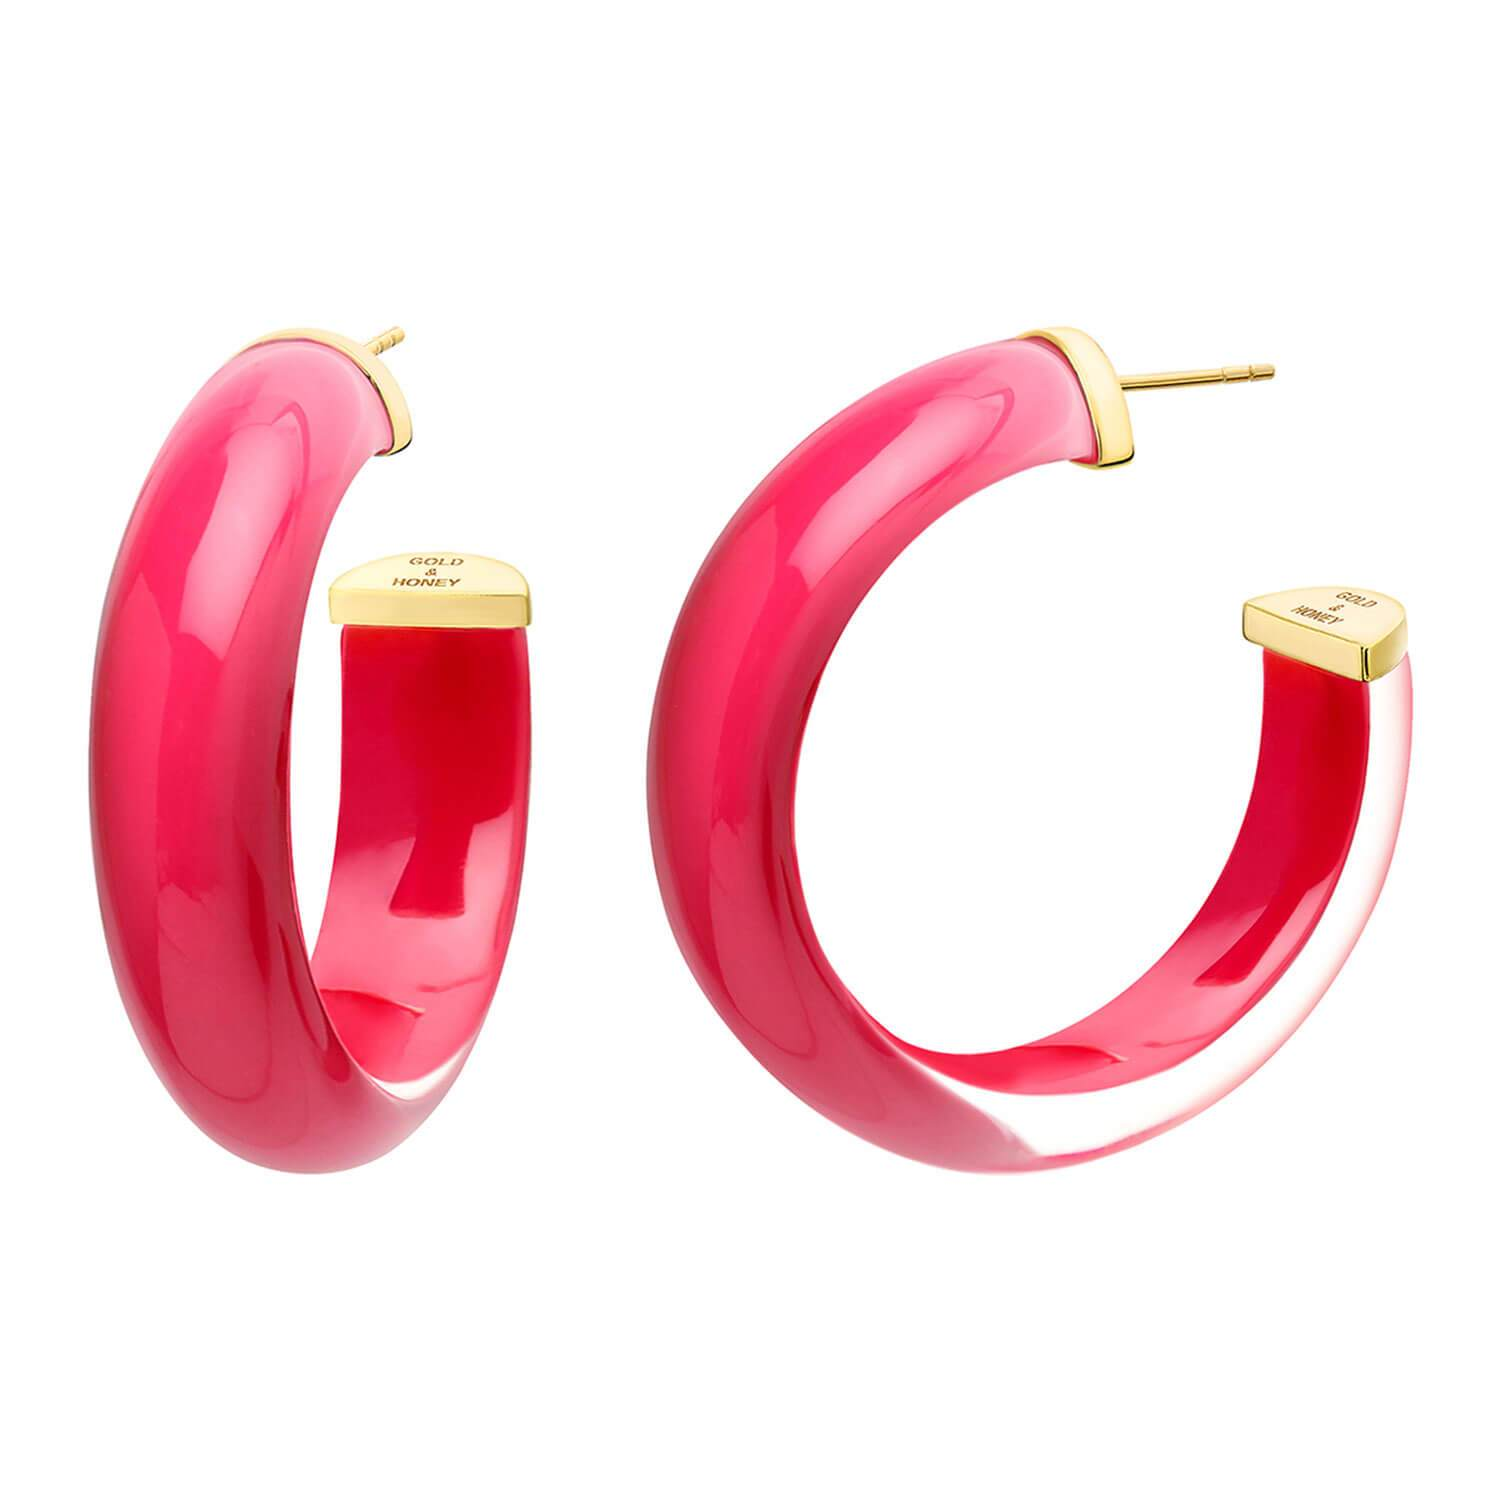 1.5 Inch Round Illusion Lucite Hoops